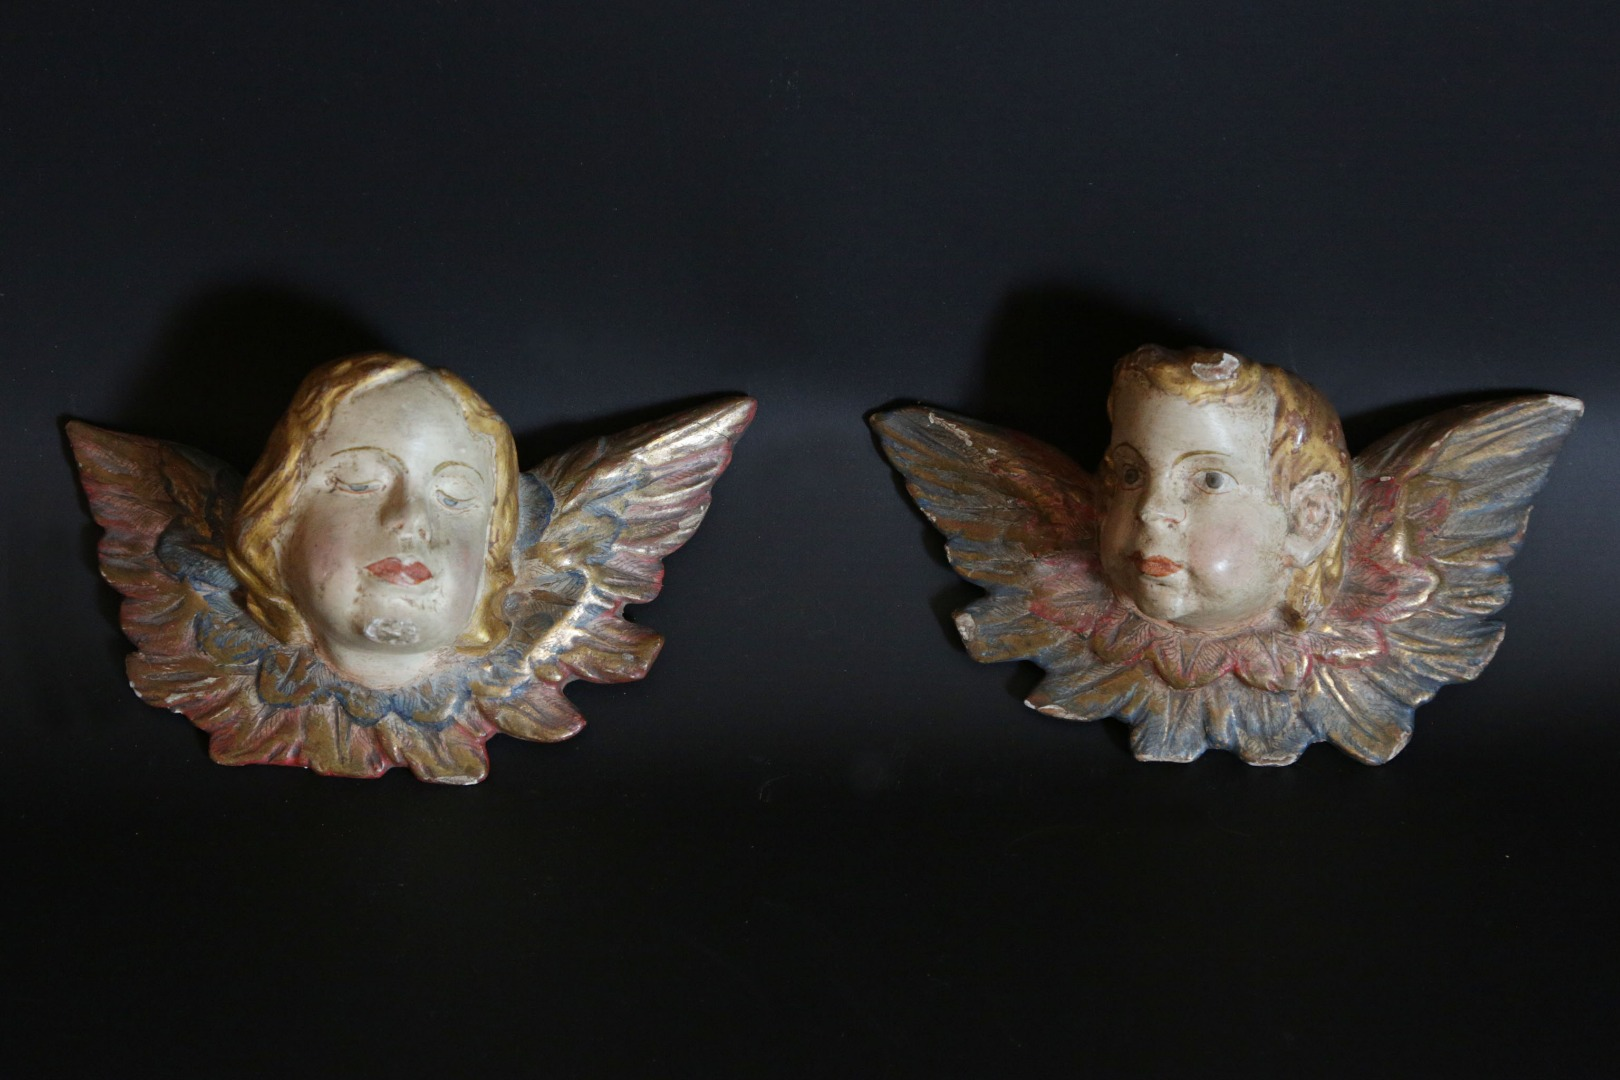 Pair of angels in painted wood  End of the 17th century beginning of the 18th century